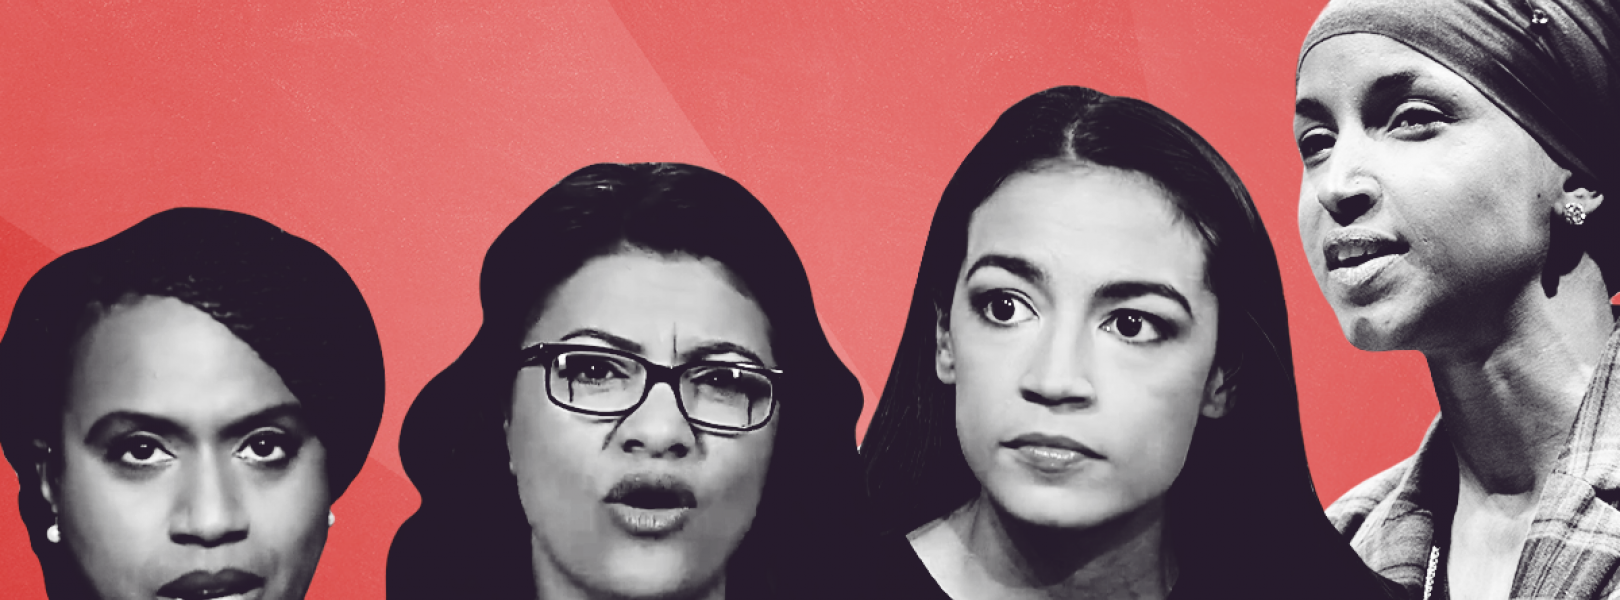 Media-billboard-threatens-four-minority-congresswomen-of-color